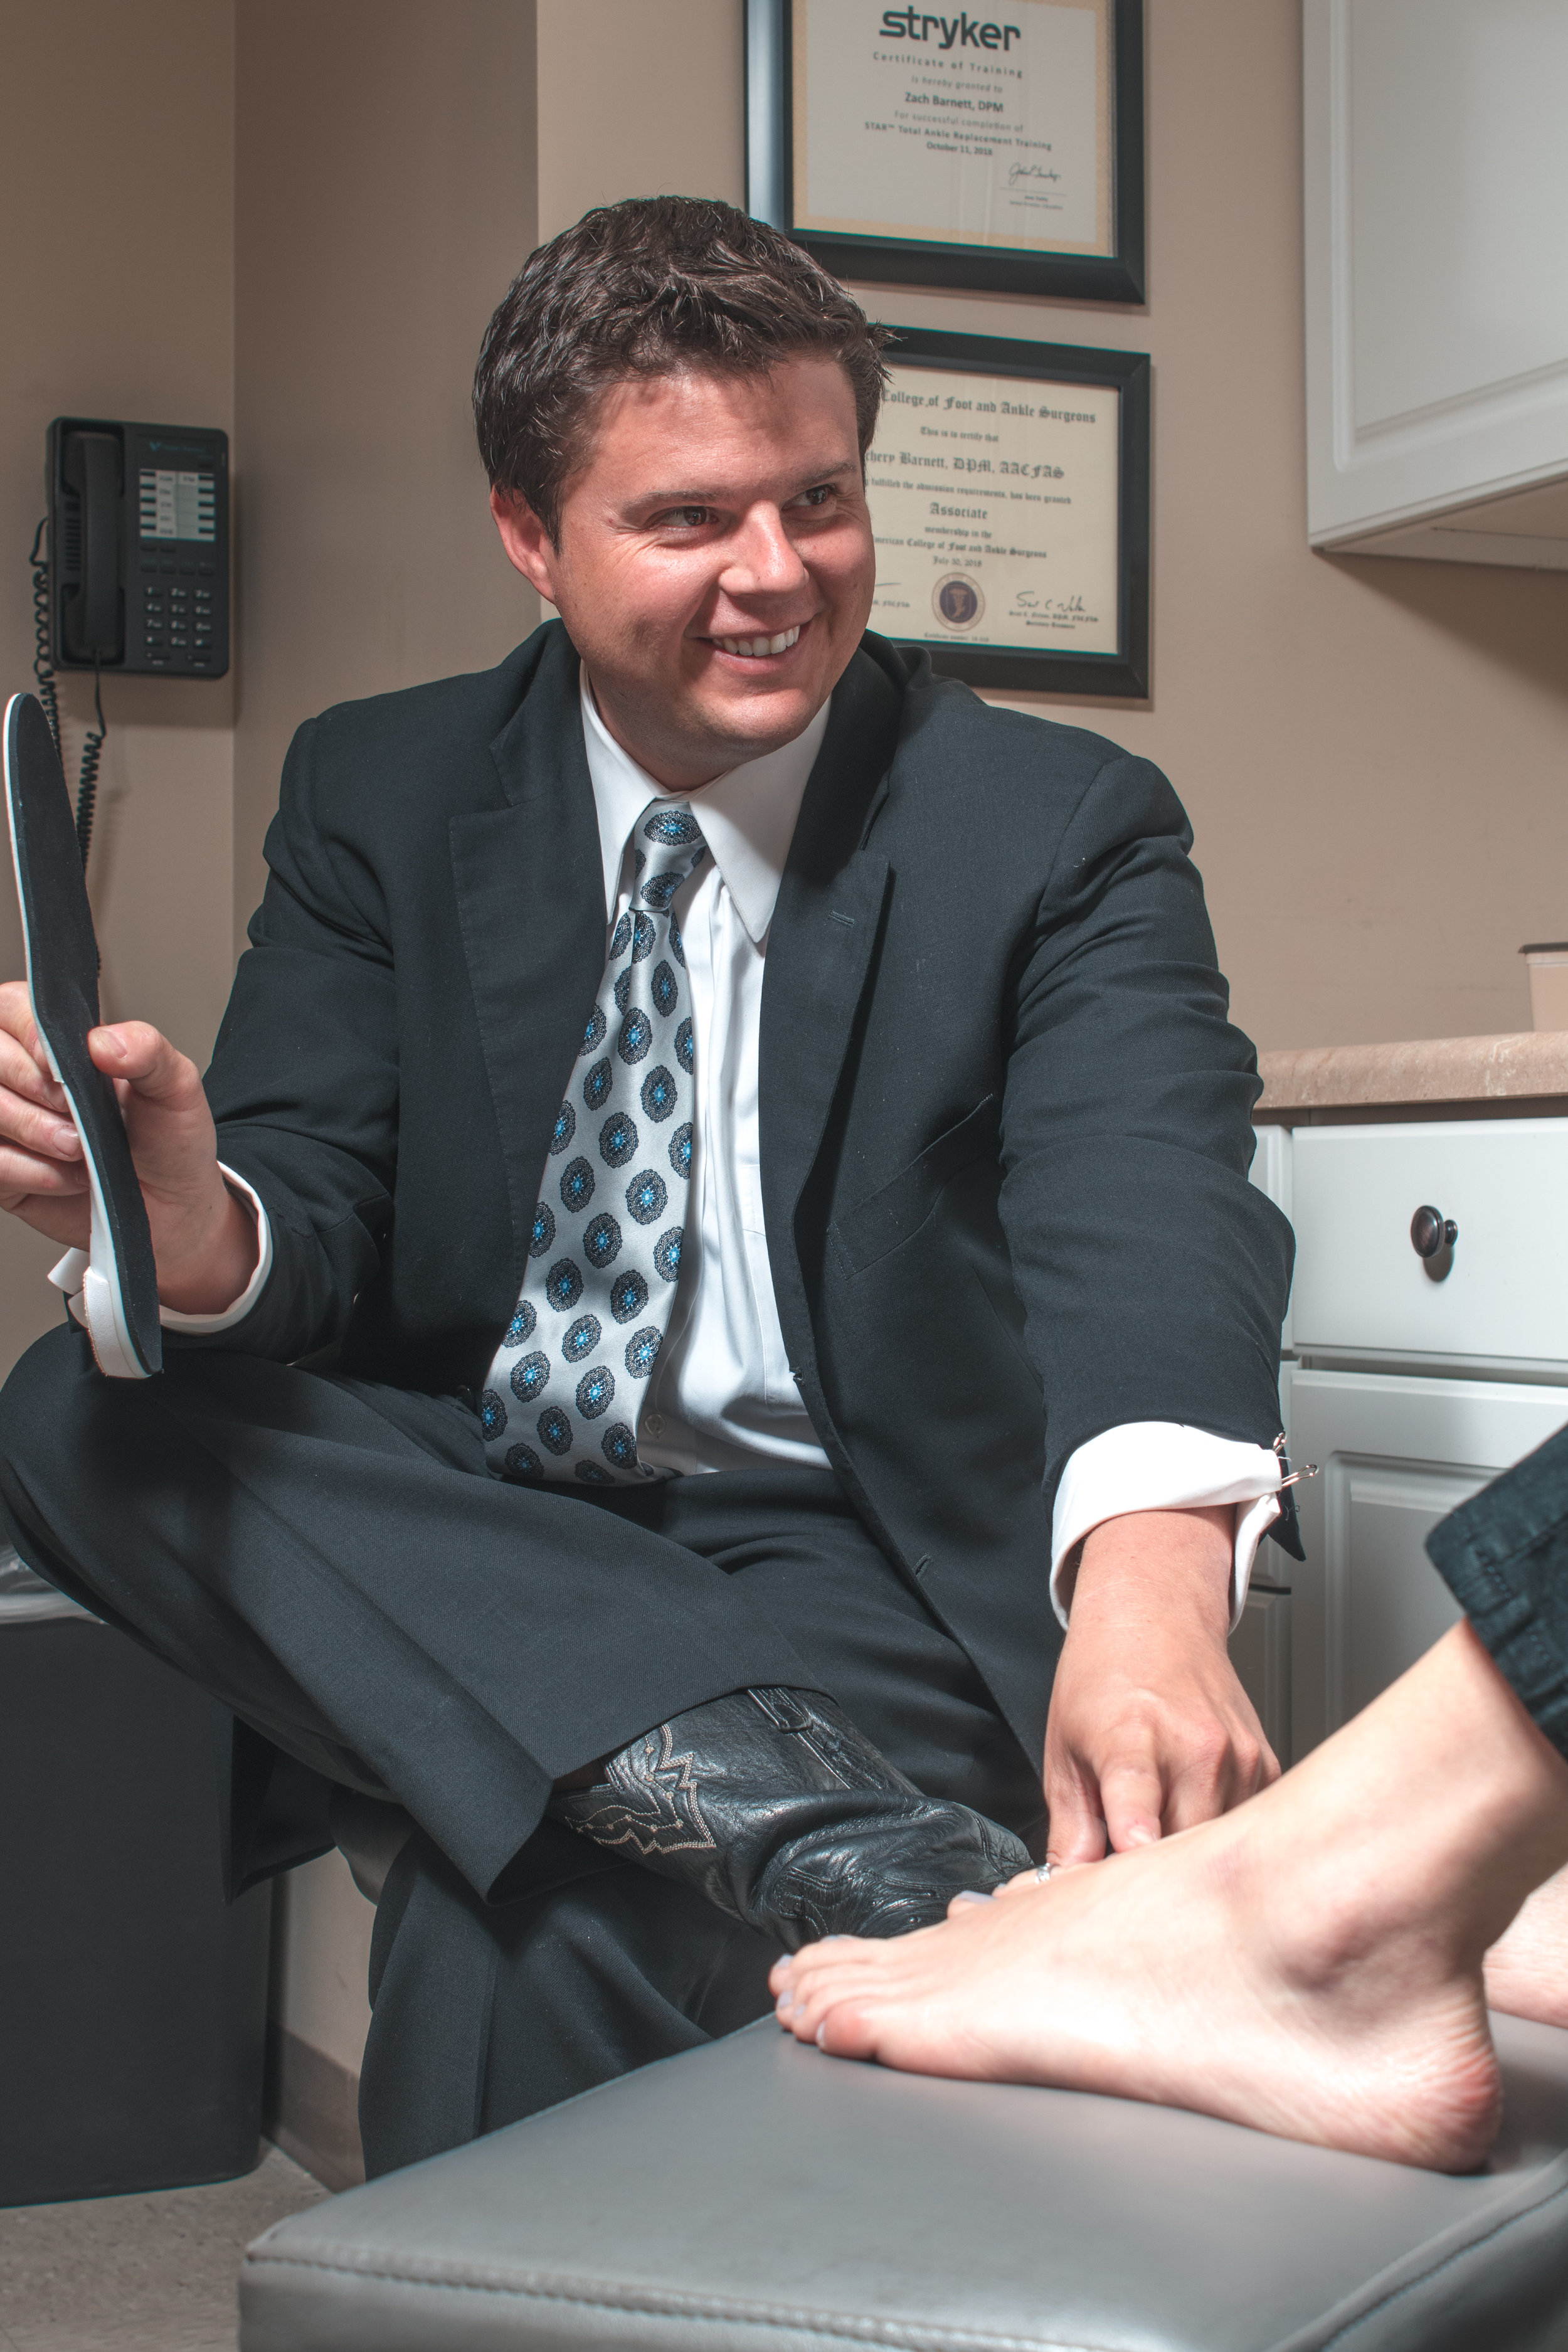 biomechanical analysis for foot, heel, lower back, hips and knee pain relief by podiatrists in tampa fl